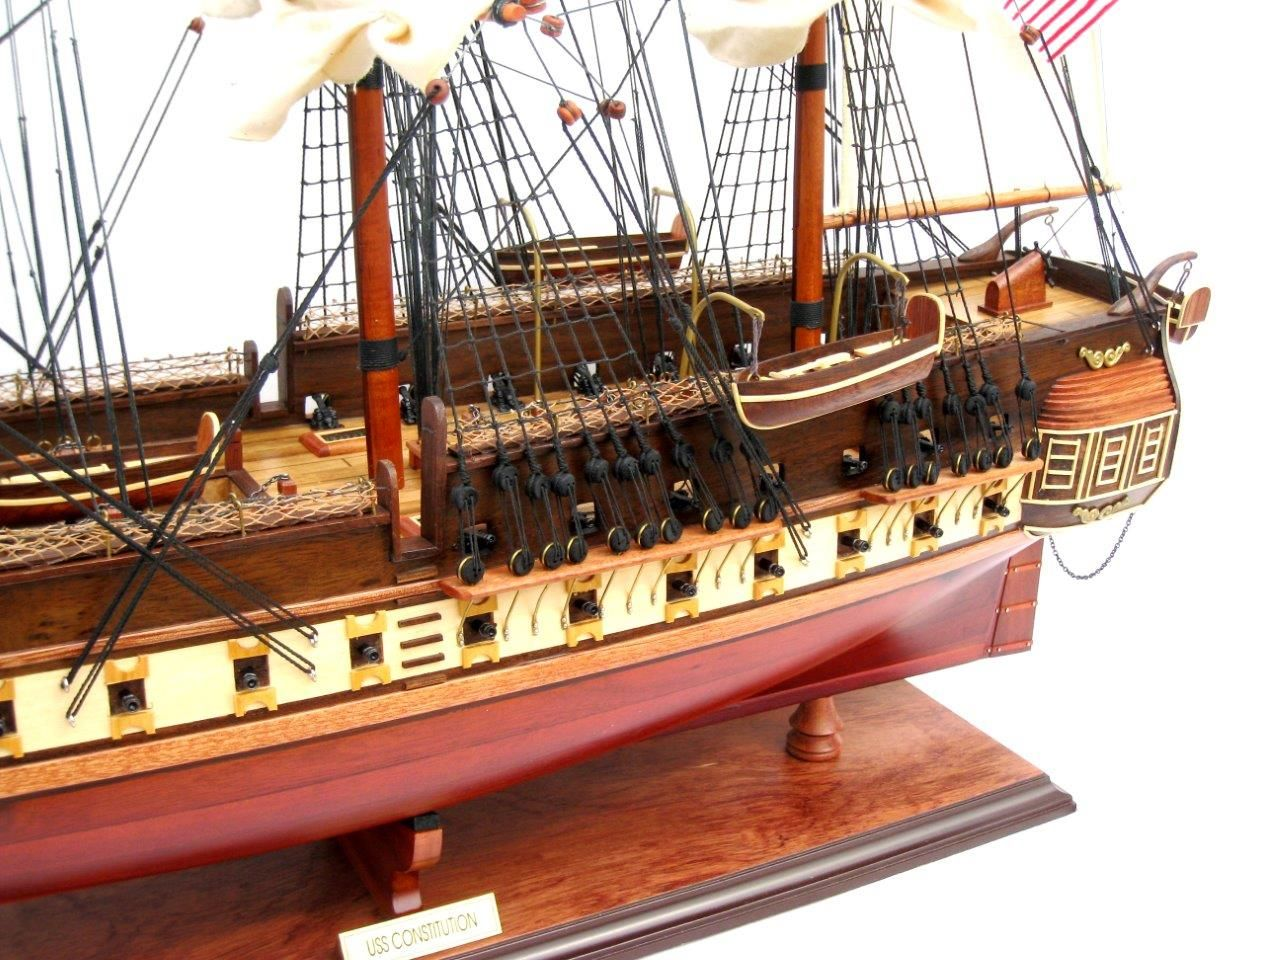 2095-12442-USS-Constitution-Wooden-Model-Ship